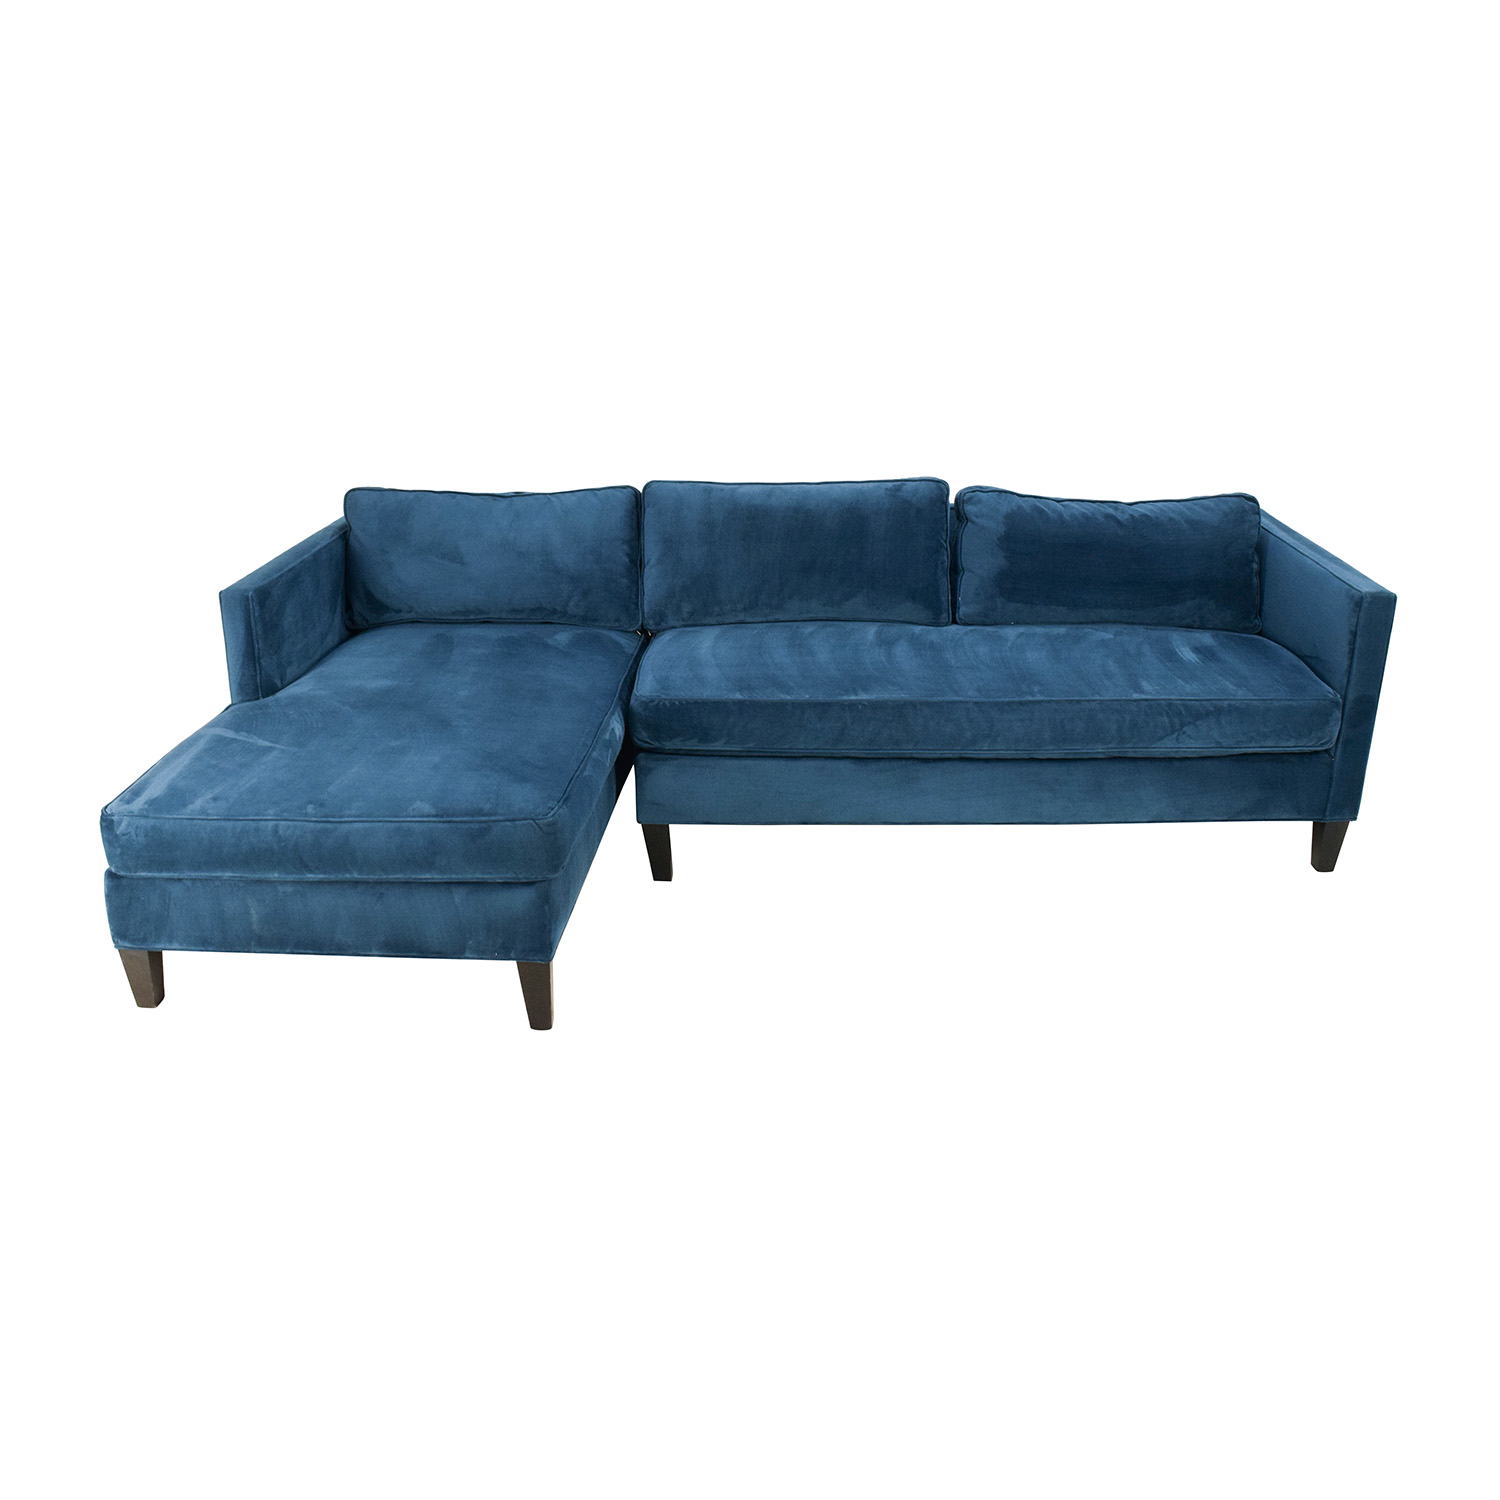 West Elm West Elm Dunham Sectional Sofa on sale